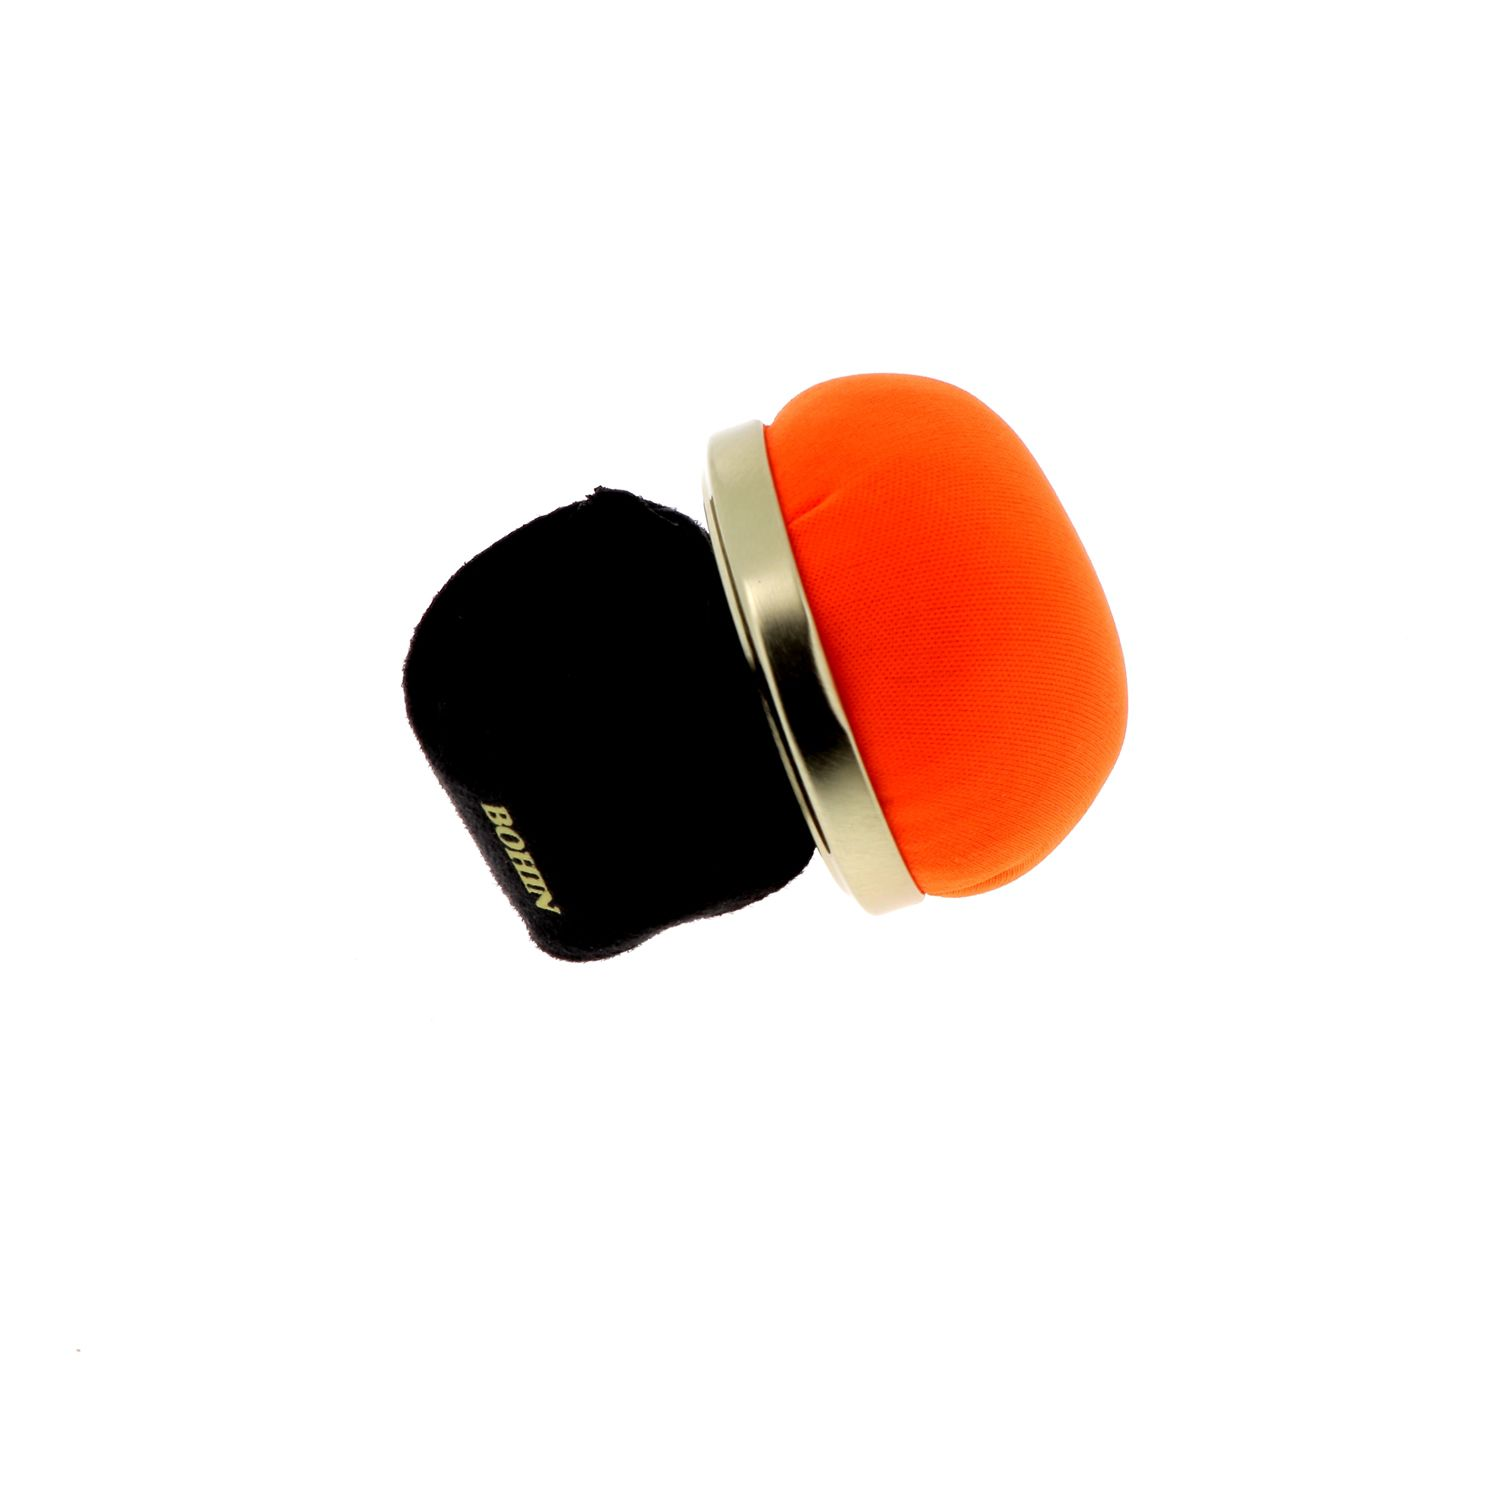 bracelets pelote ajustable de couleur orange fluo